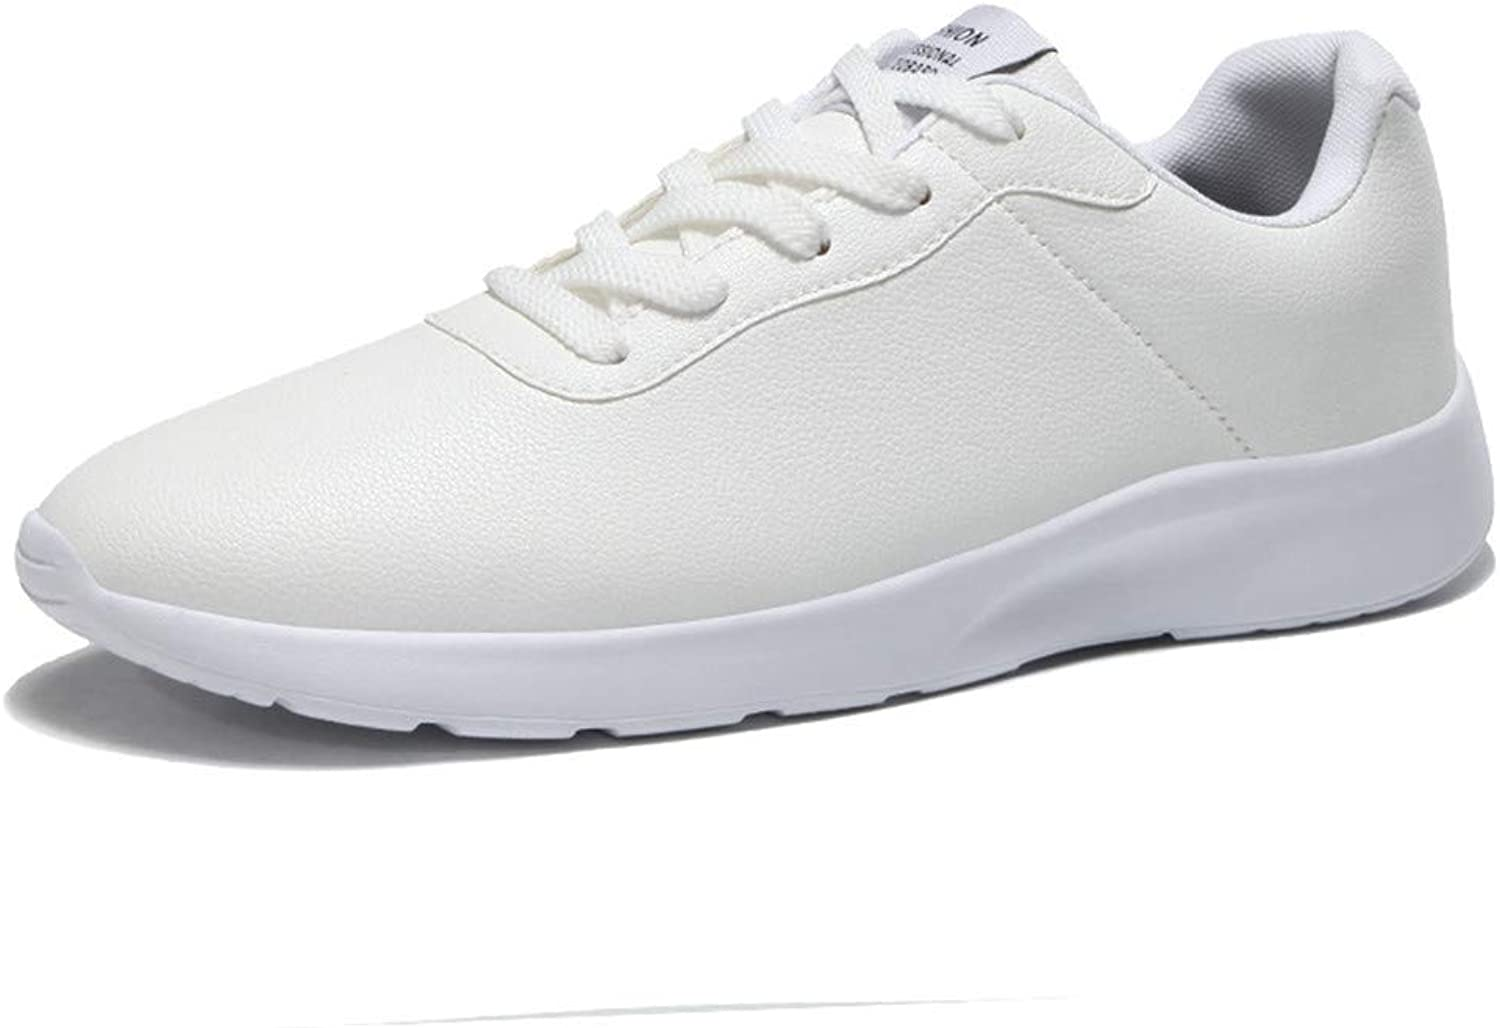 Womens Men Running shoes Mesh Gym Casual Sports shoes Tennis Walking shoes Air Trainers Fitness Flats Athletic Competition Sneakers